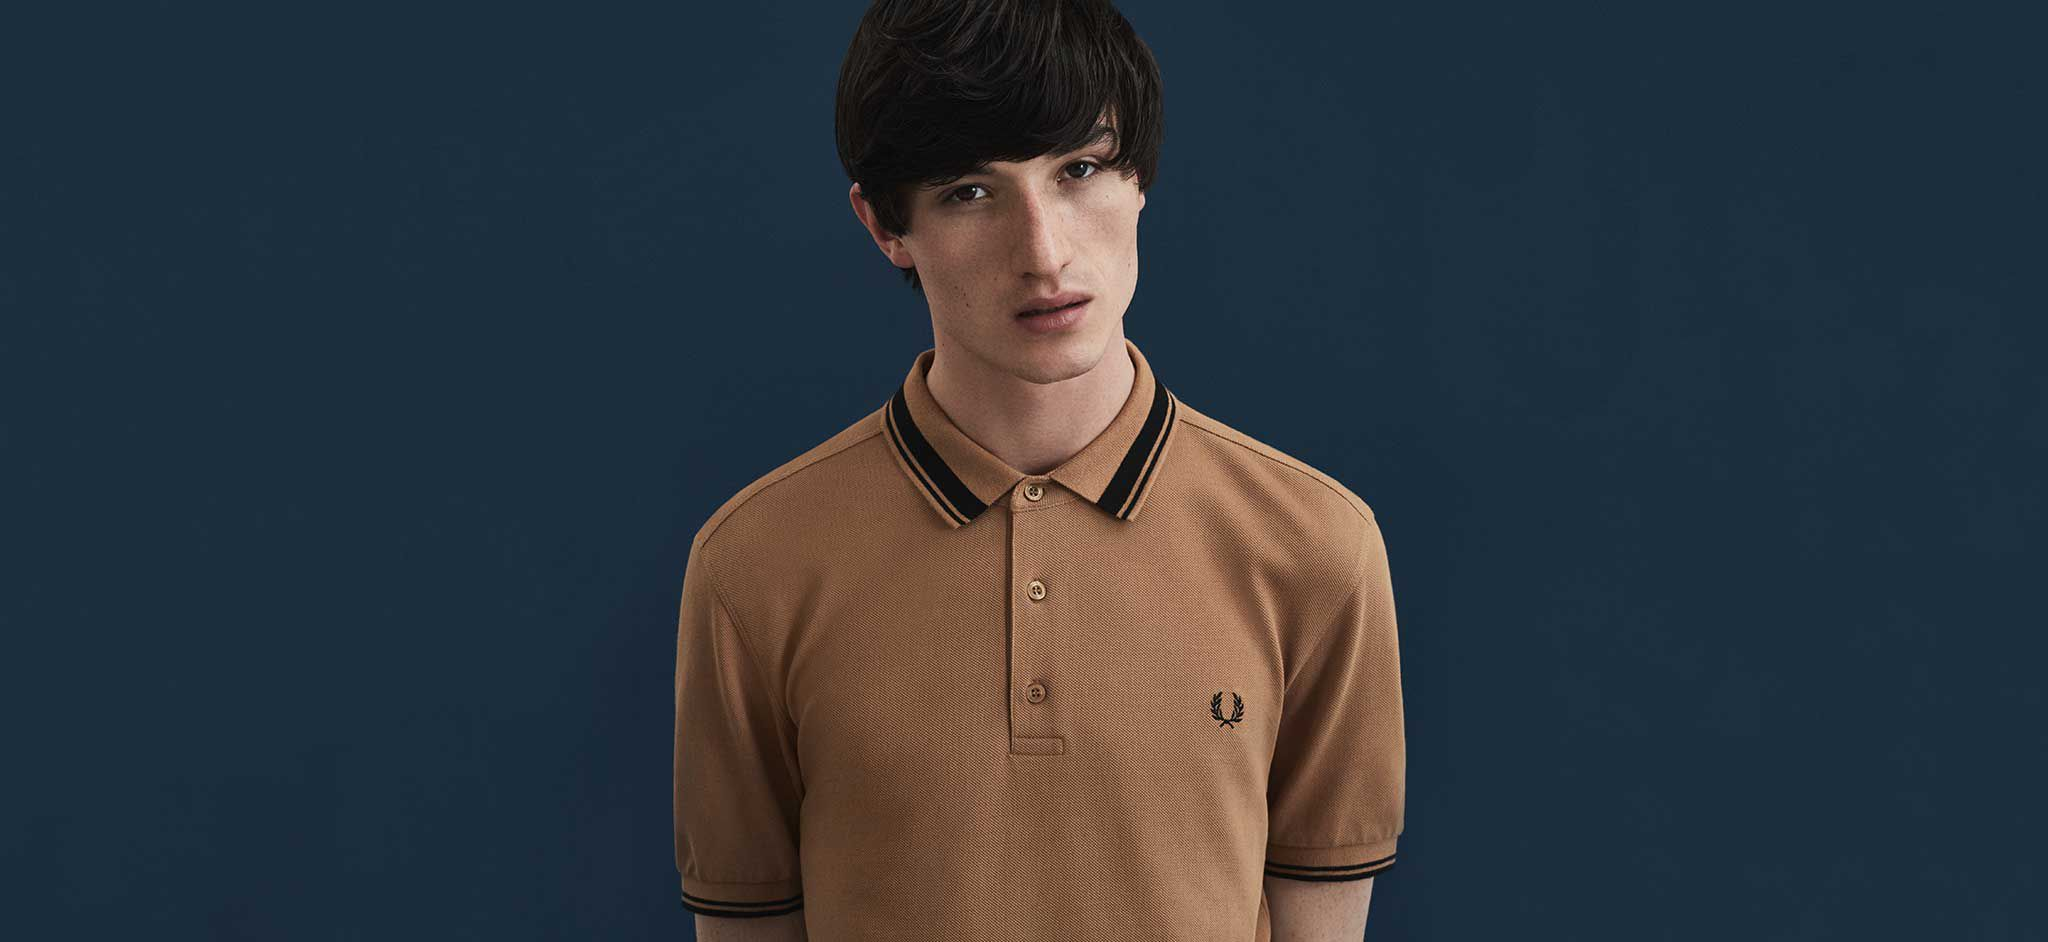 Fred Perry John Lewis Partners Tendencies Longshirt Plain Navy Shirt The Polo